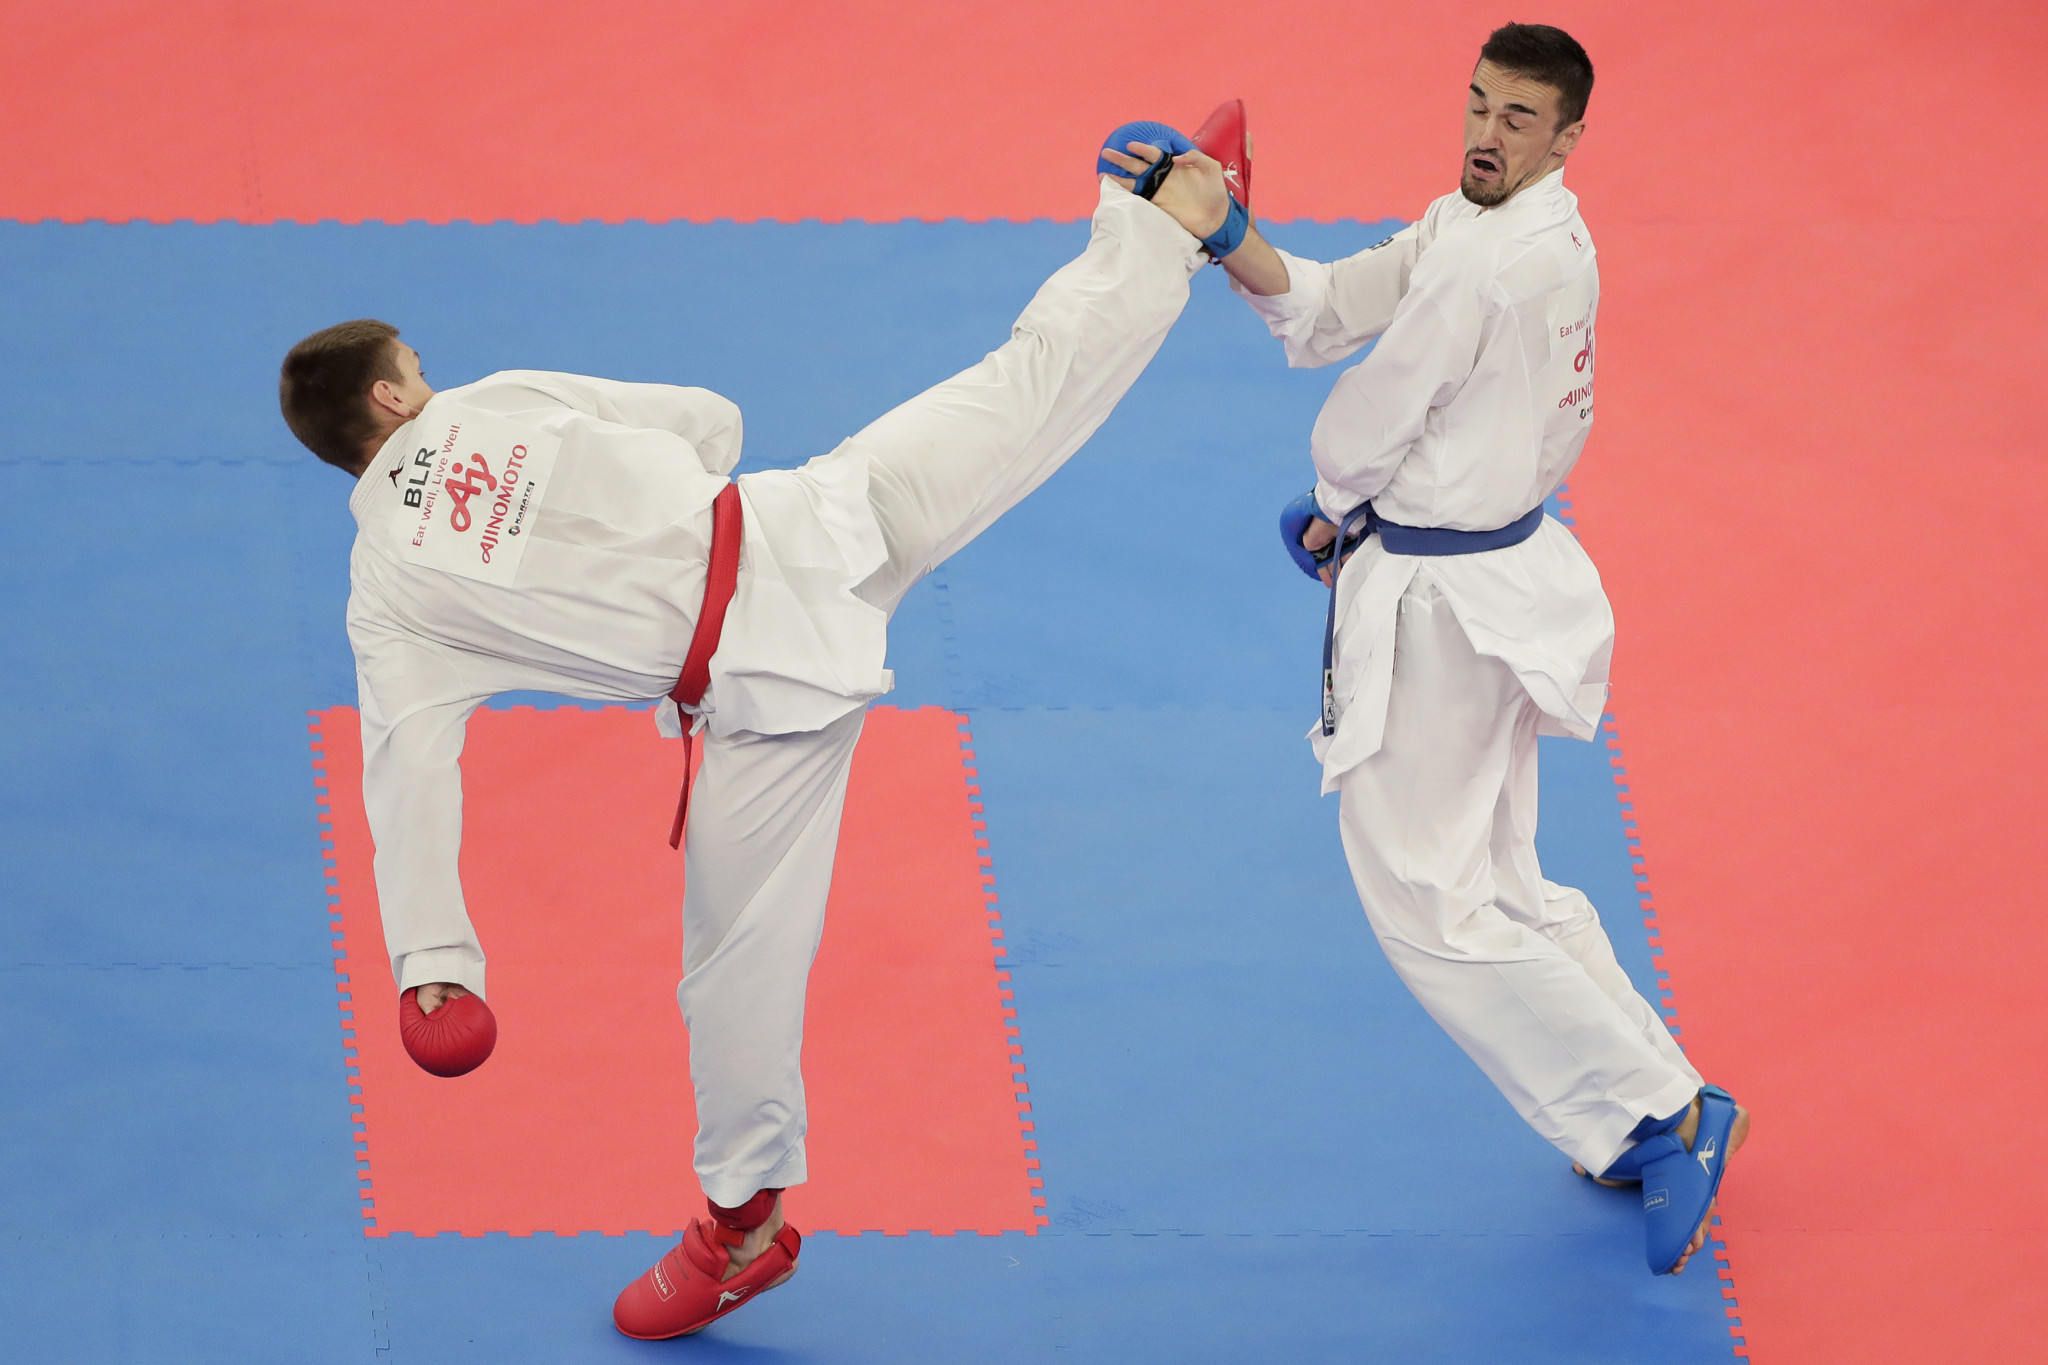 Karate's Olympic debut at Tokyo 2020 took place at the Nippon Budokan ©Getty Images